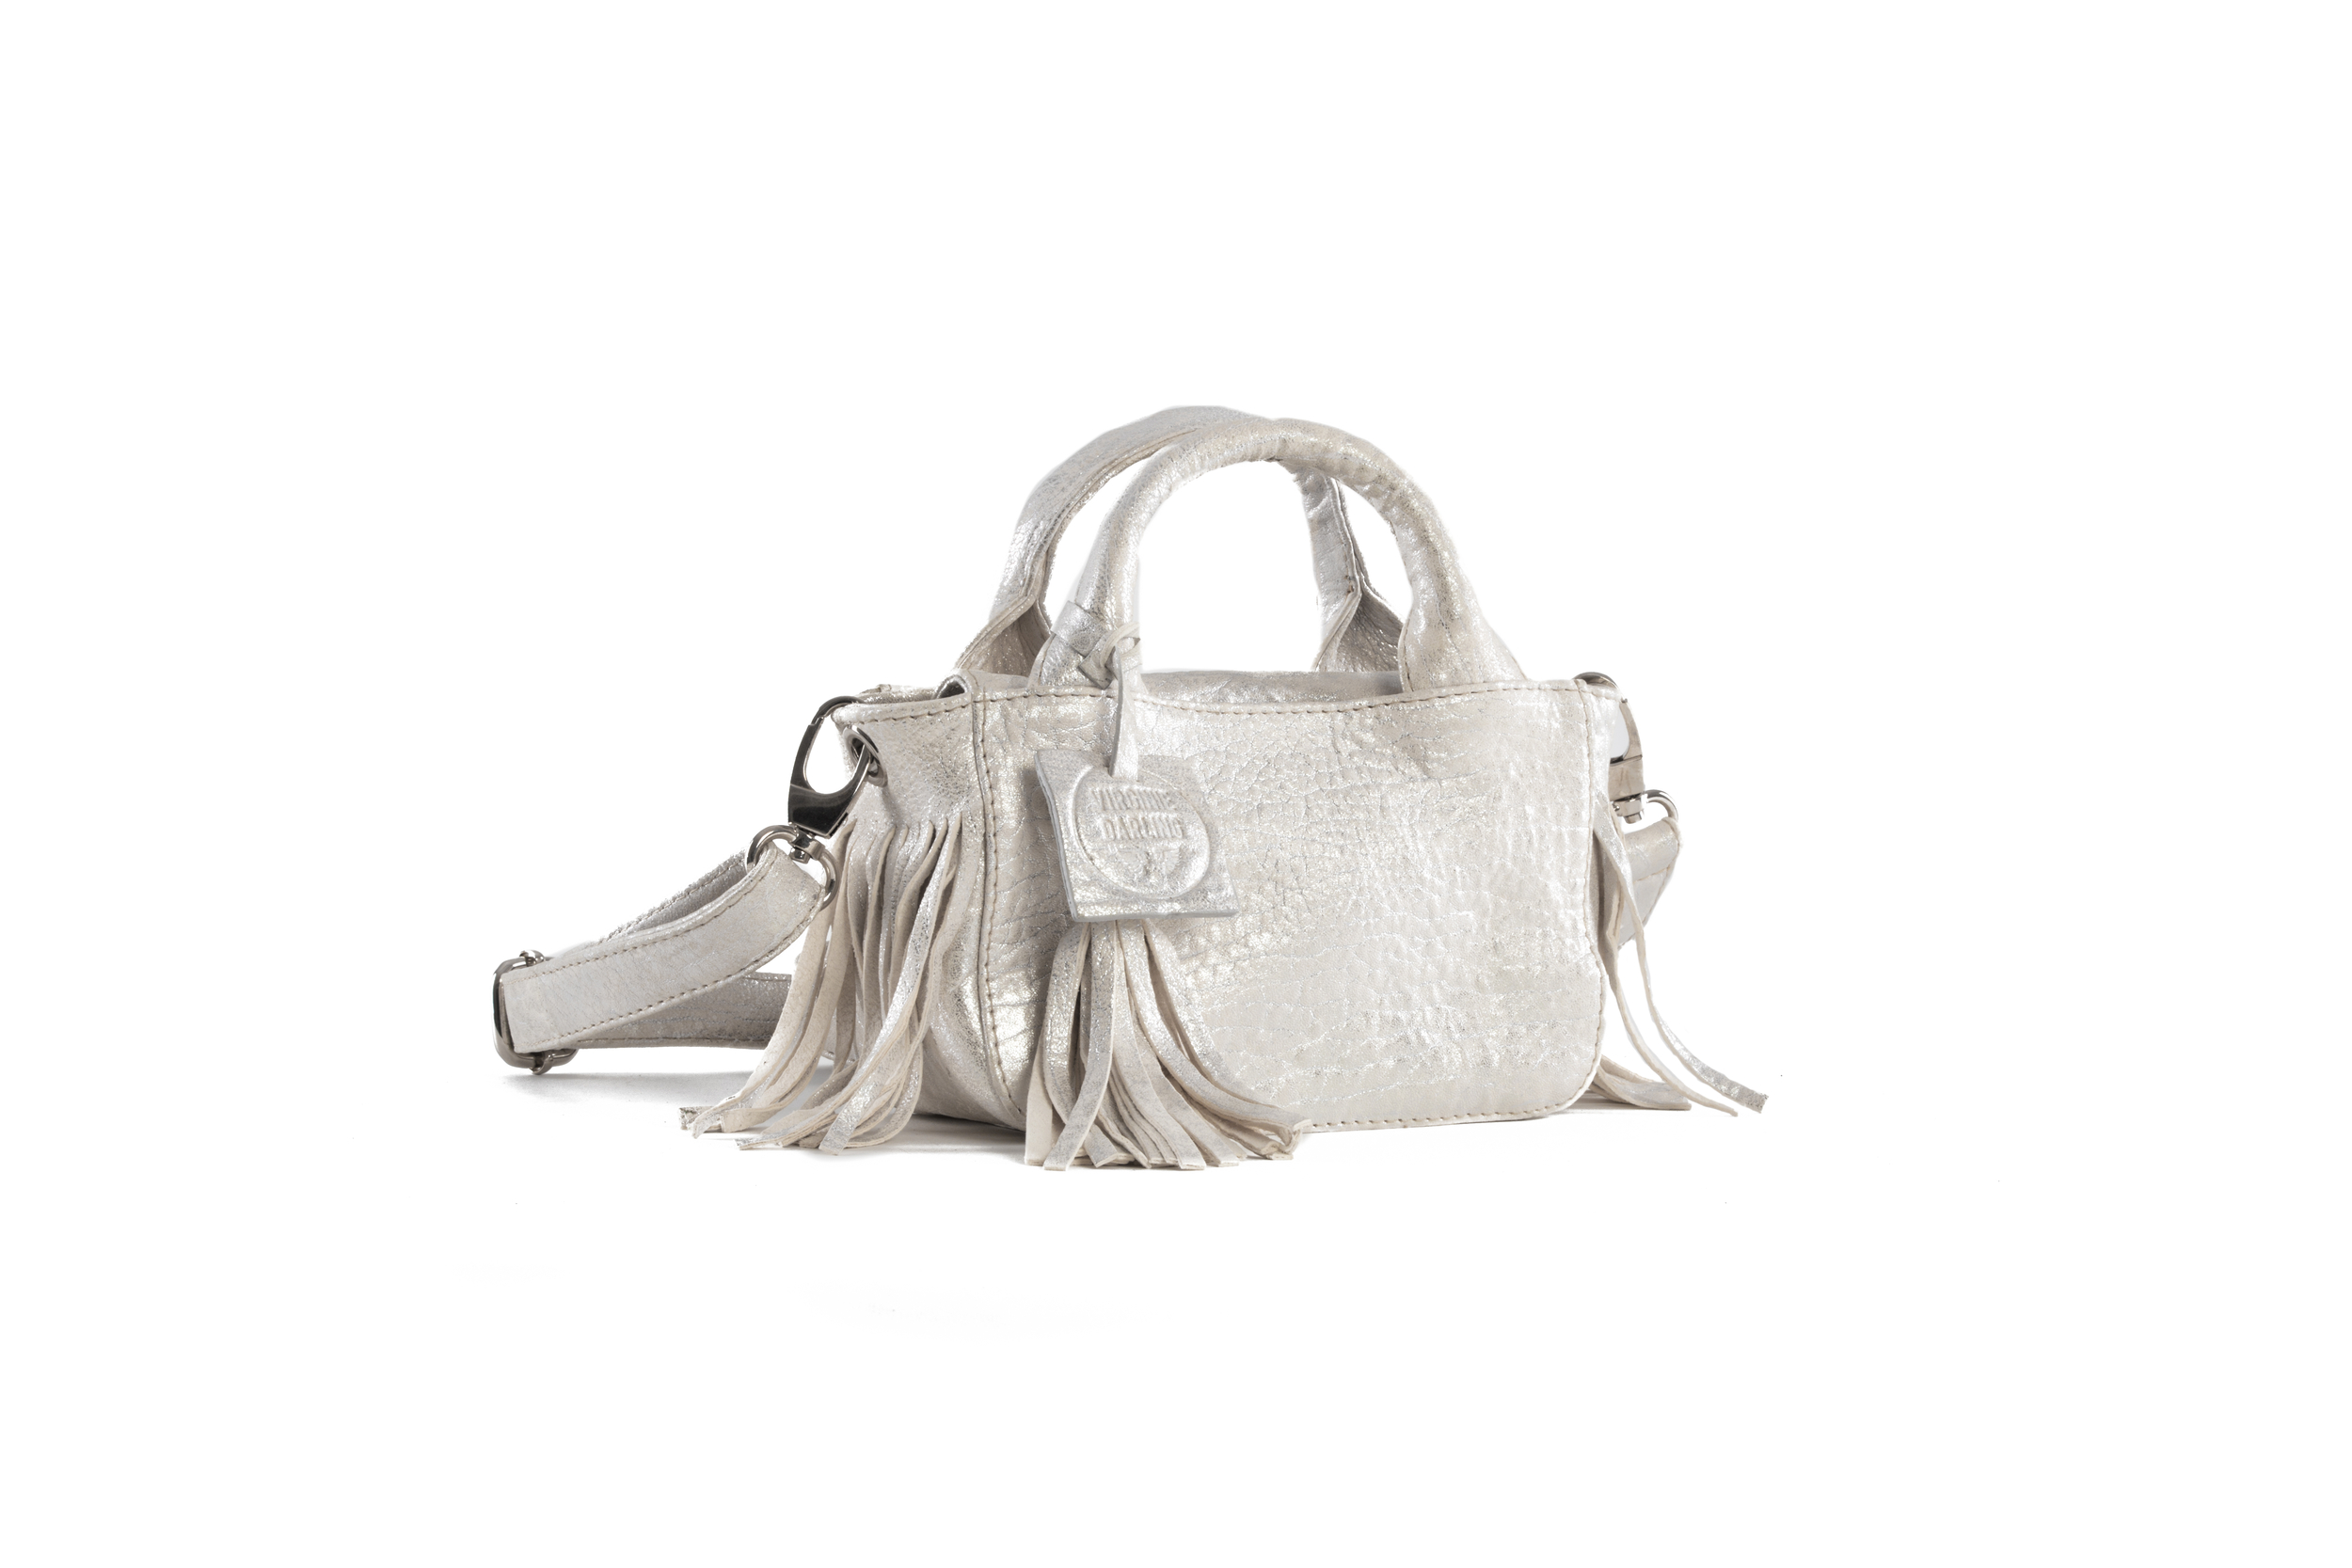 SAC MINI BABY DARLING BUBBLE WHITE ARGENT - Nouvelle Collection